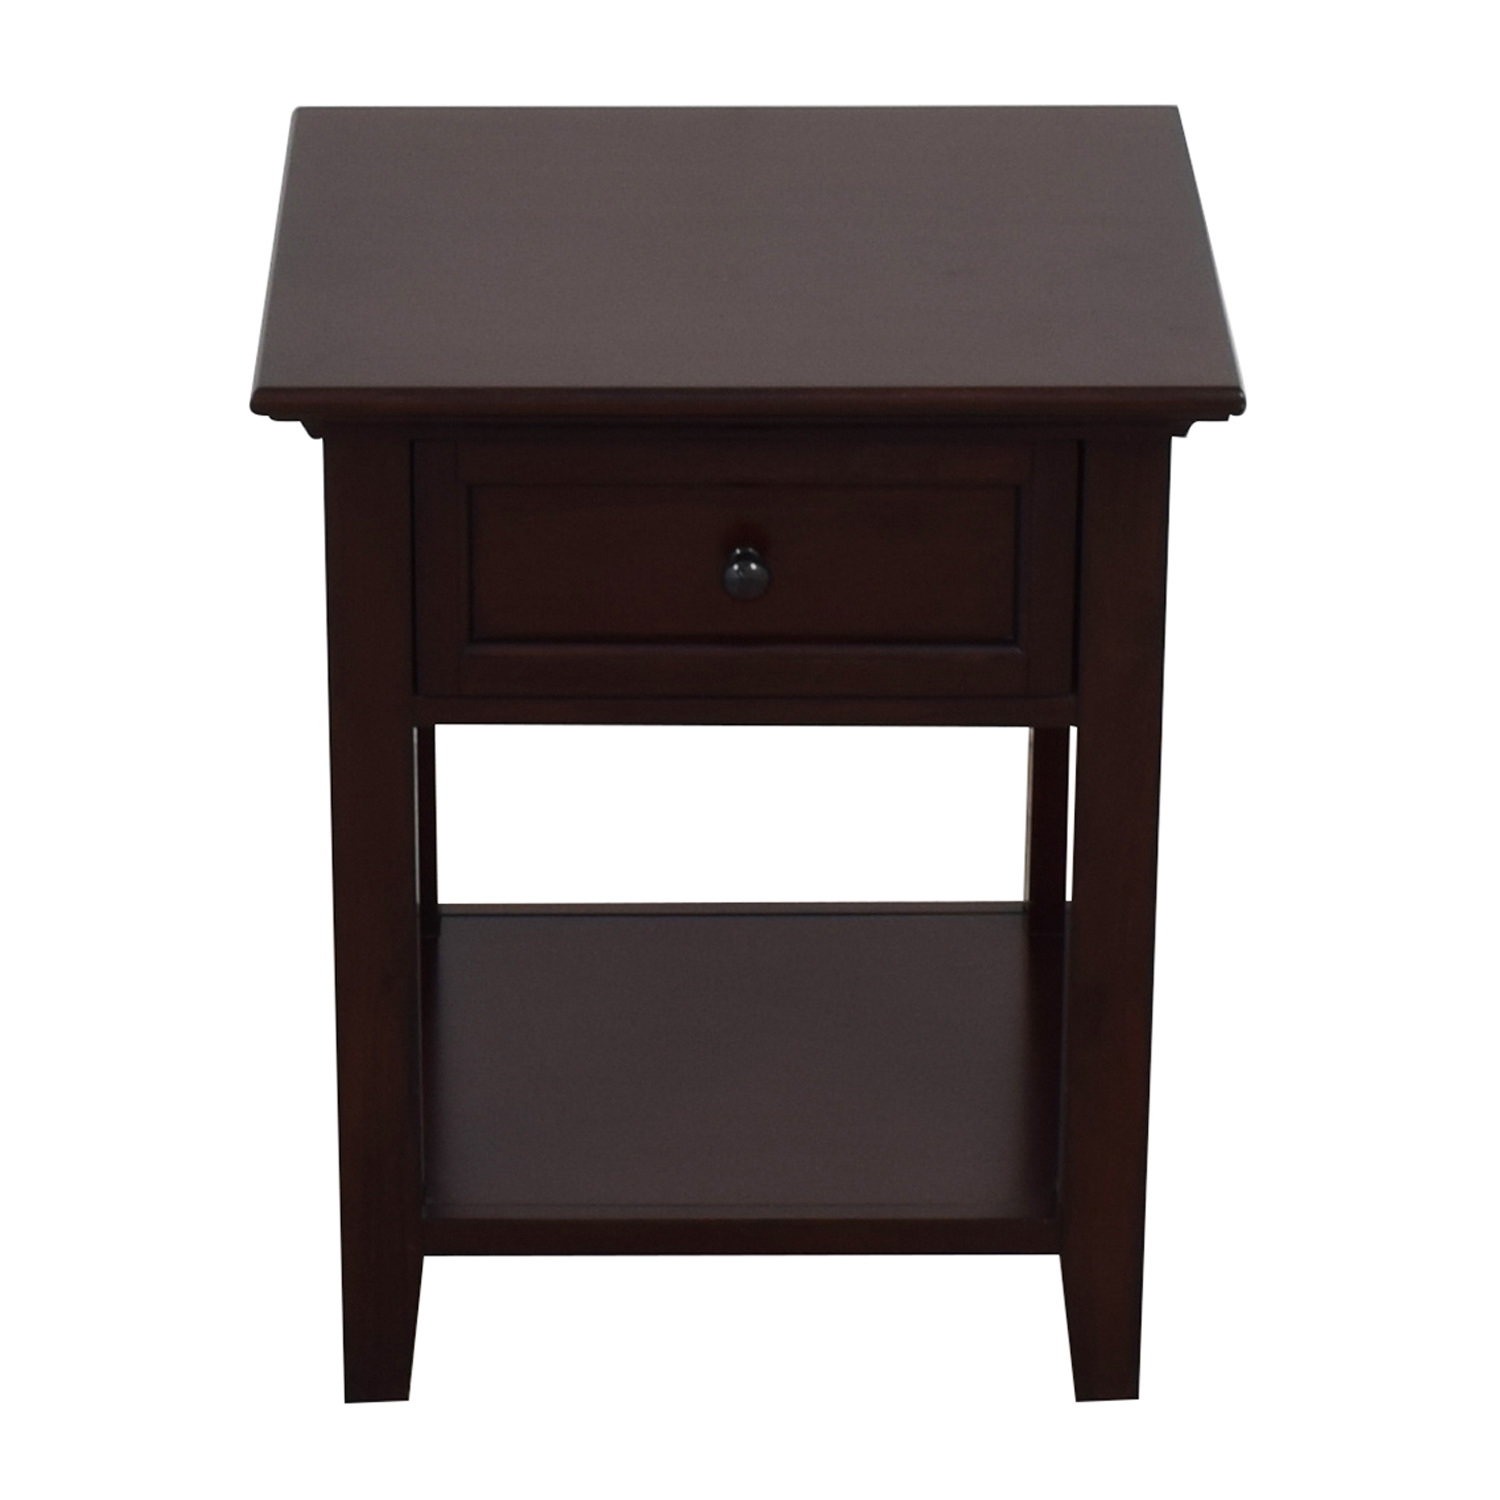 73 Off Pottery Barn Pottery Barn Hudson One Drawer Nightstand Tables